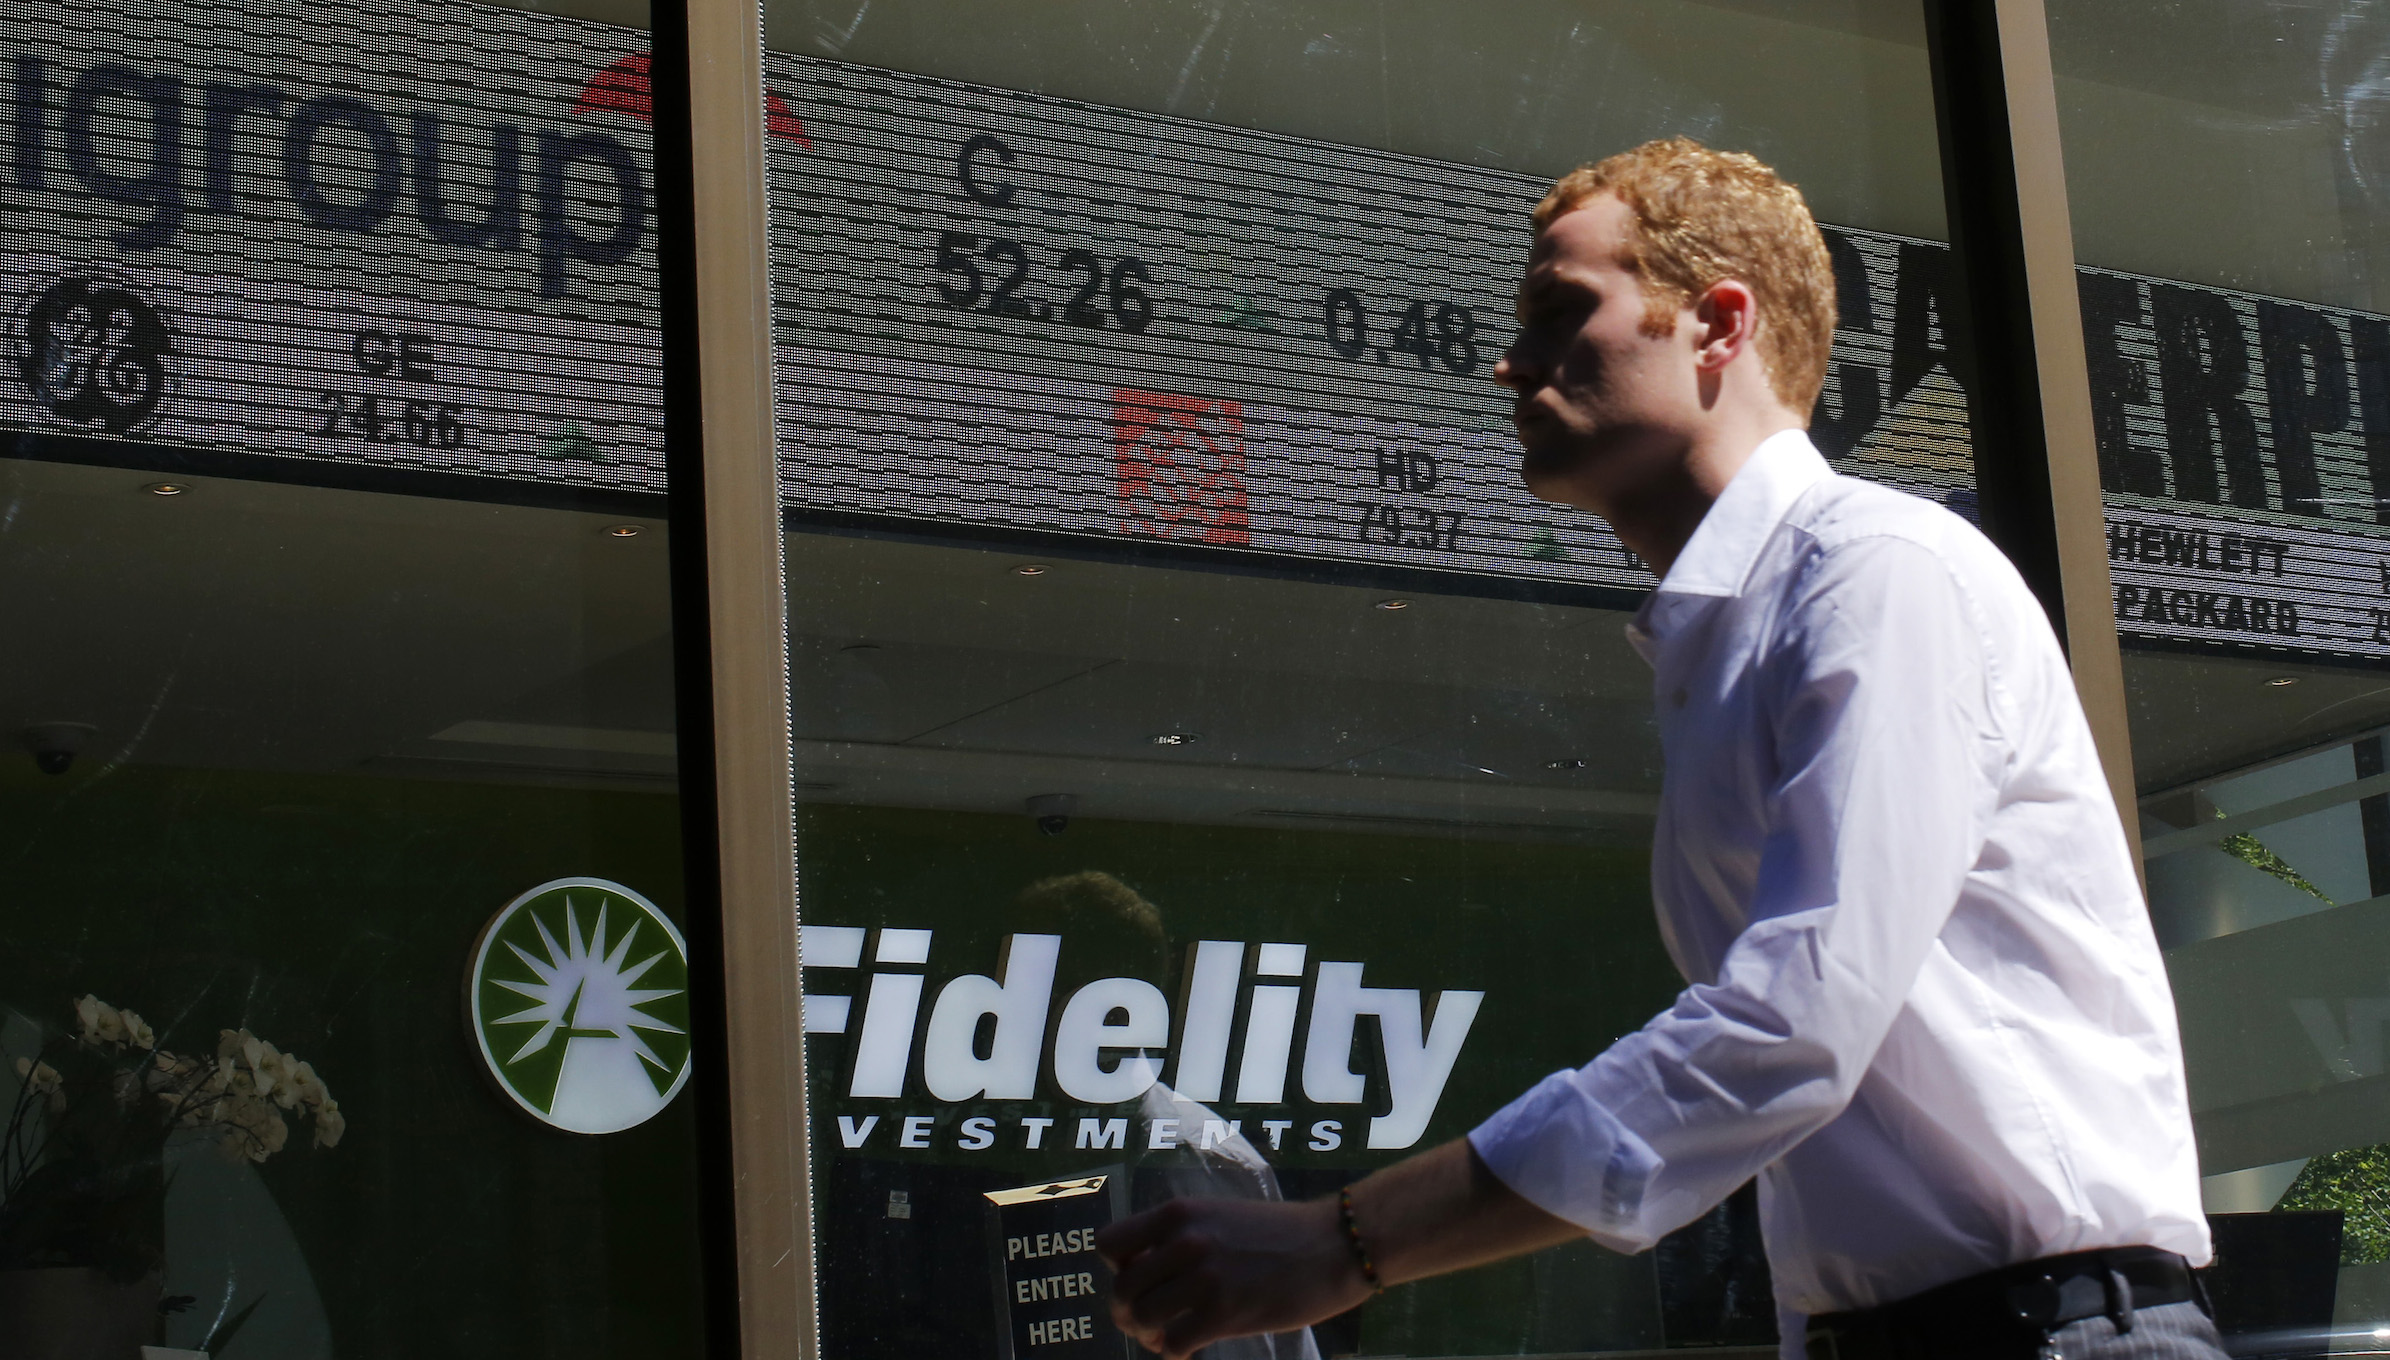 A pedestrian walks past a stock ticker at a Fidelity Investments office in Boston, Massachusetts July 31, 2013.   REUTERS/Brian Snyder (UNITED STATES - Tags: SOCIETY BUSINESS) - RTX126A0